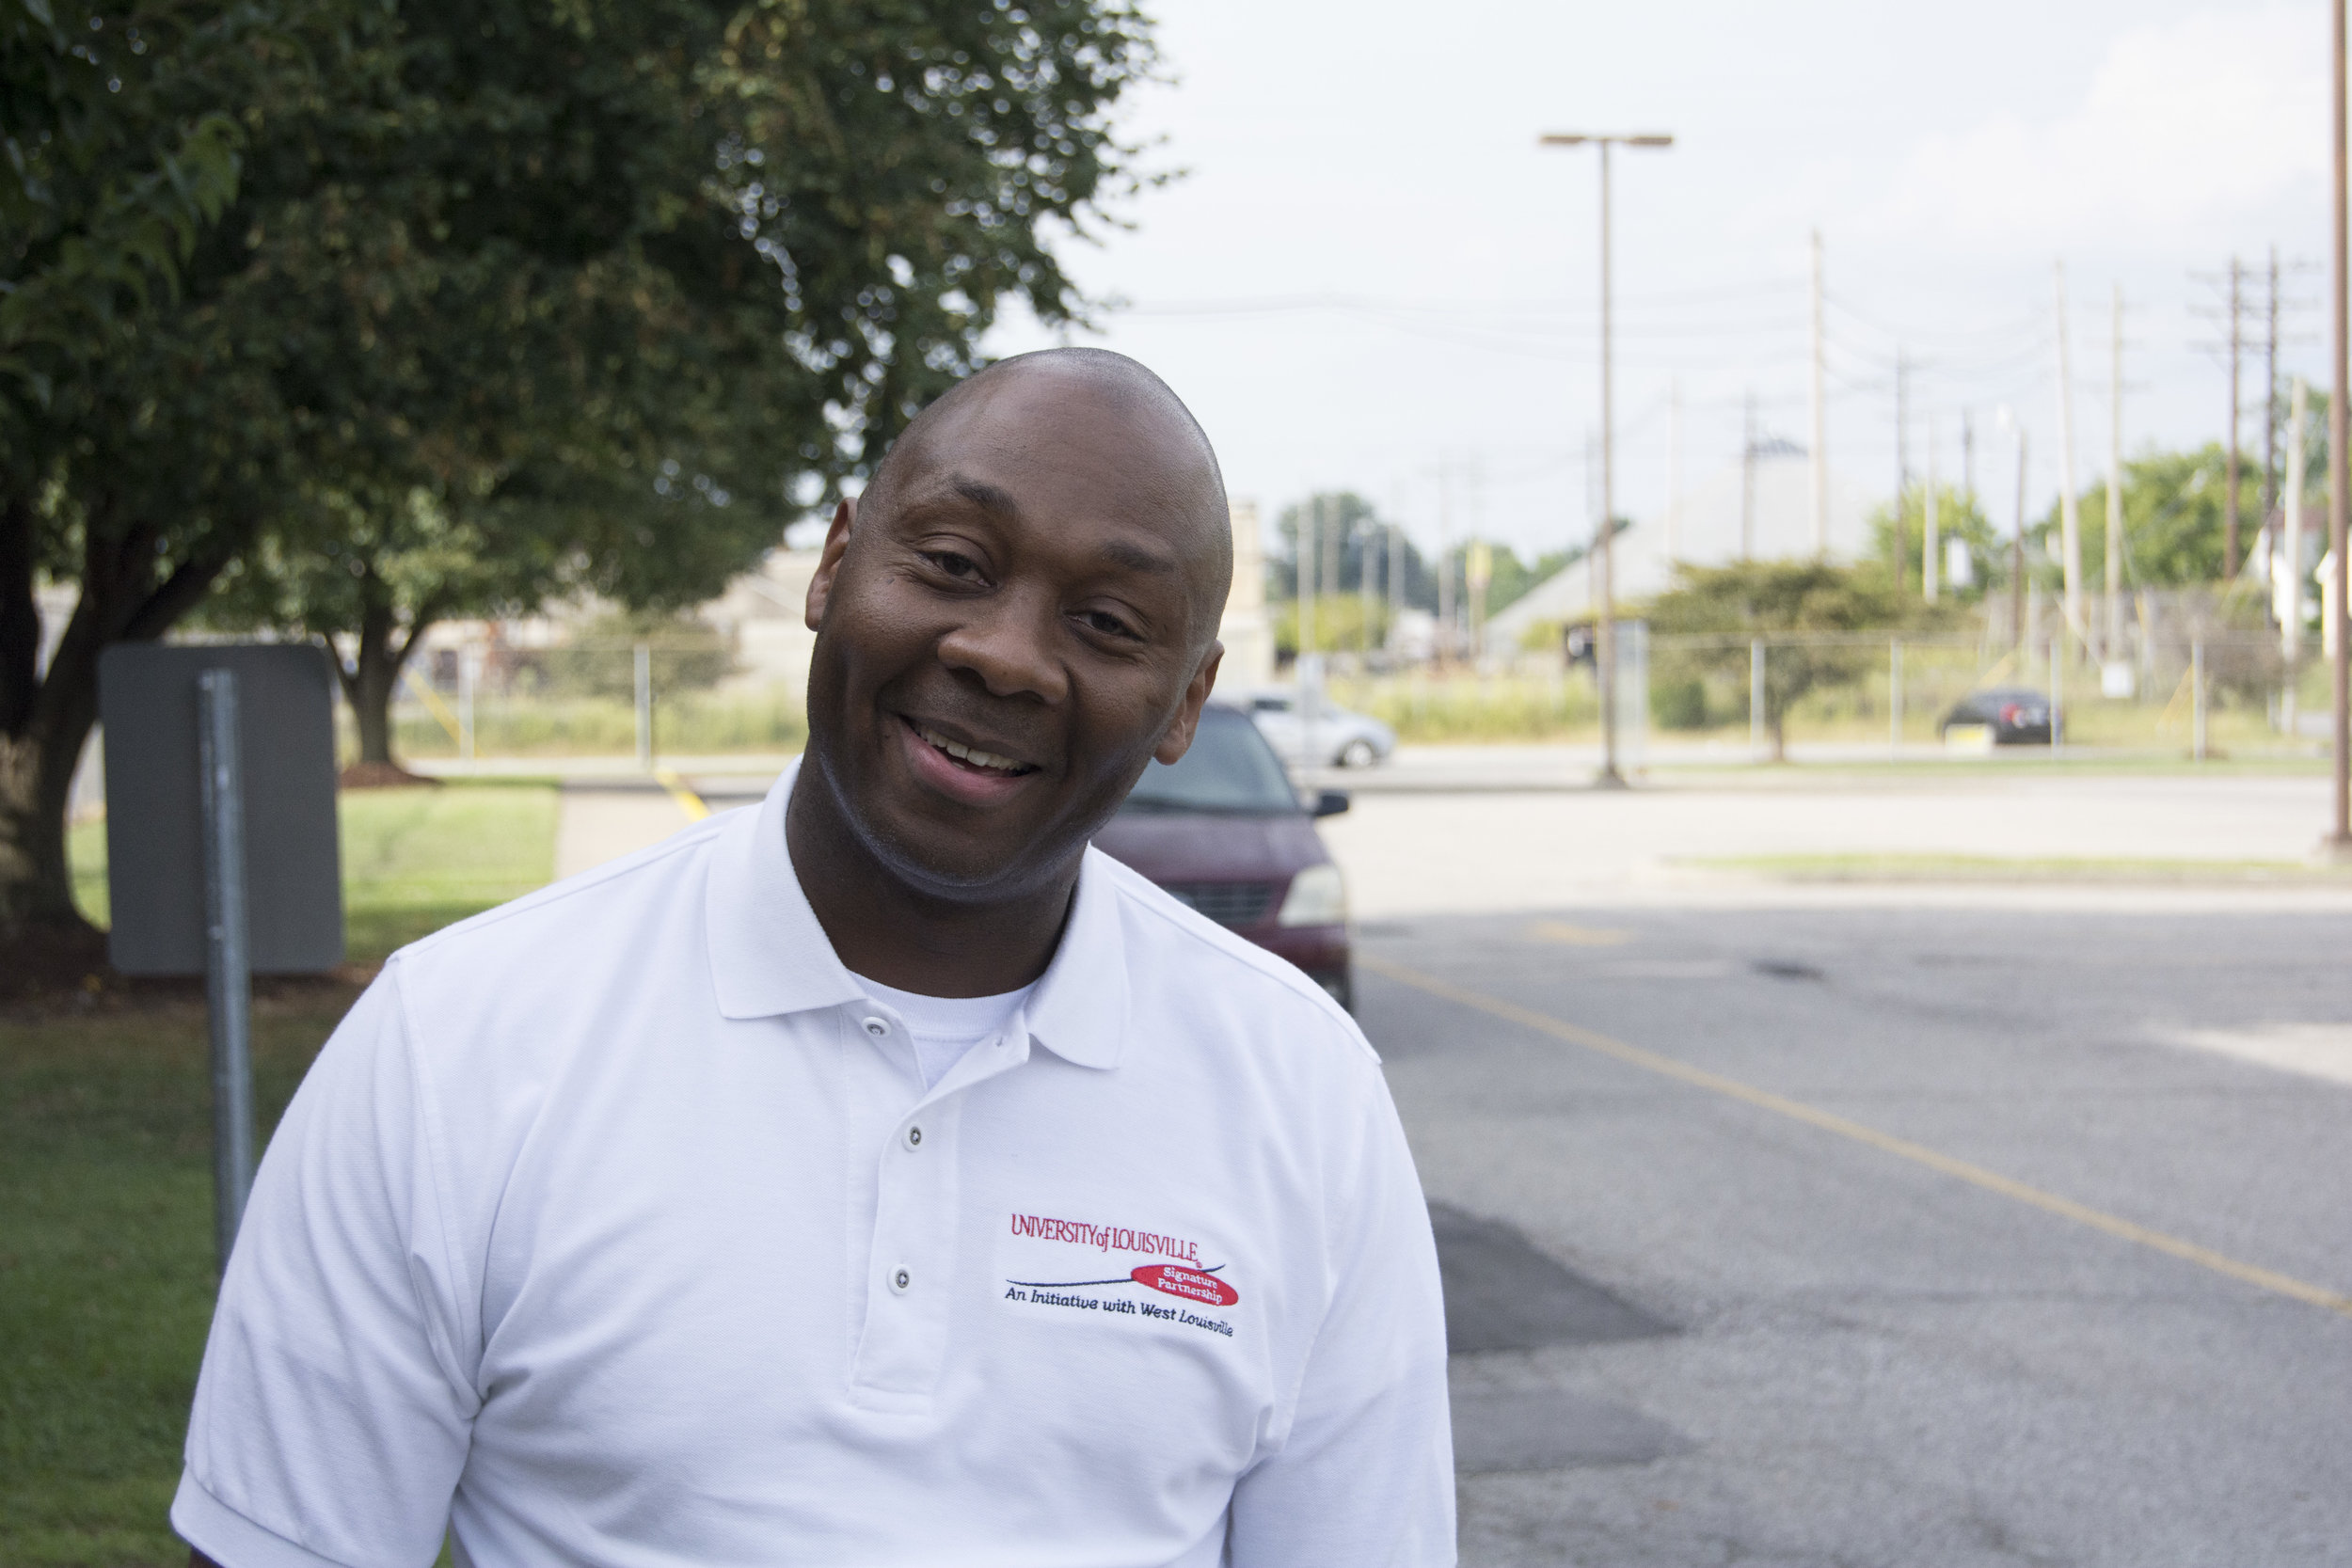 """""""The basic fundamental premise that I have about improving West Louisville is that I don't believe that there are outside forces and outside resources that are going to come and save us, inside West Louisville. I think the solutions to improve West Louisville are ultimately going to come from the people who live in West Louisville. And so, I think it's counterproductive for us to continue to put so much energy into pursuing people, resources, agencies, businesses, leaders, from outside of this community, with hopes of them bringing those resources and ideas back to this community, don't improve it. I think that the solutions that we seek are right here, in our own backyard. I think that rolling up our sleeves and being committed to those solutions and being committed to being apart of those solutions has to be where we start. I think that we start by embracing that fundamental premise, then we get ourselves so much further down the road. I watch so many of us seek outside resources to fix things that I just don't believe will be addressed by people, from outside of this community. I just don't think it'll happen. That's the 30,000 ft level. The more granular level is this notion of us getting out of our homes. We are guilty of it, in West Louisville, just like many other people around this community, in large. We go into our households and we close the doors and watch television, and engage with our own families. We go out, we don't look people in the eye, we don't shake hands, we don't talk. We don't do any of those things. We don't function as neighbors, anymore. I sincerely believe that the solutions that we seek are going to come from us breaking those silos that we live in and doing more to support one another.So, when I think about all of these murders in our communities and these young boys killing other young boys, these are people, by in large, that don't have fathers in their lives and don't have parents that are highly engaged. I think that solutions to h"""